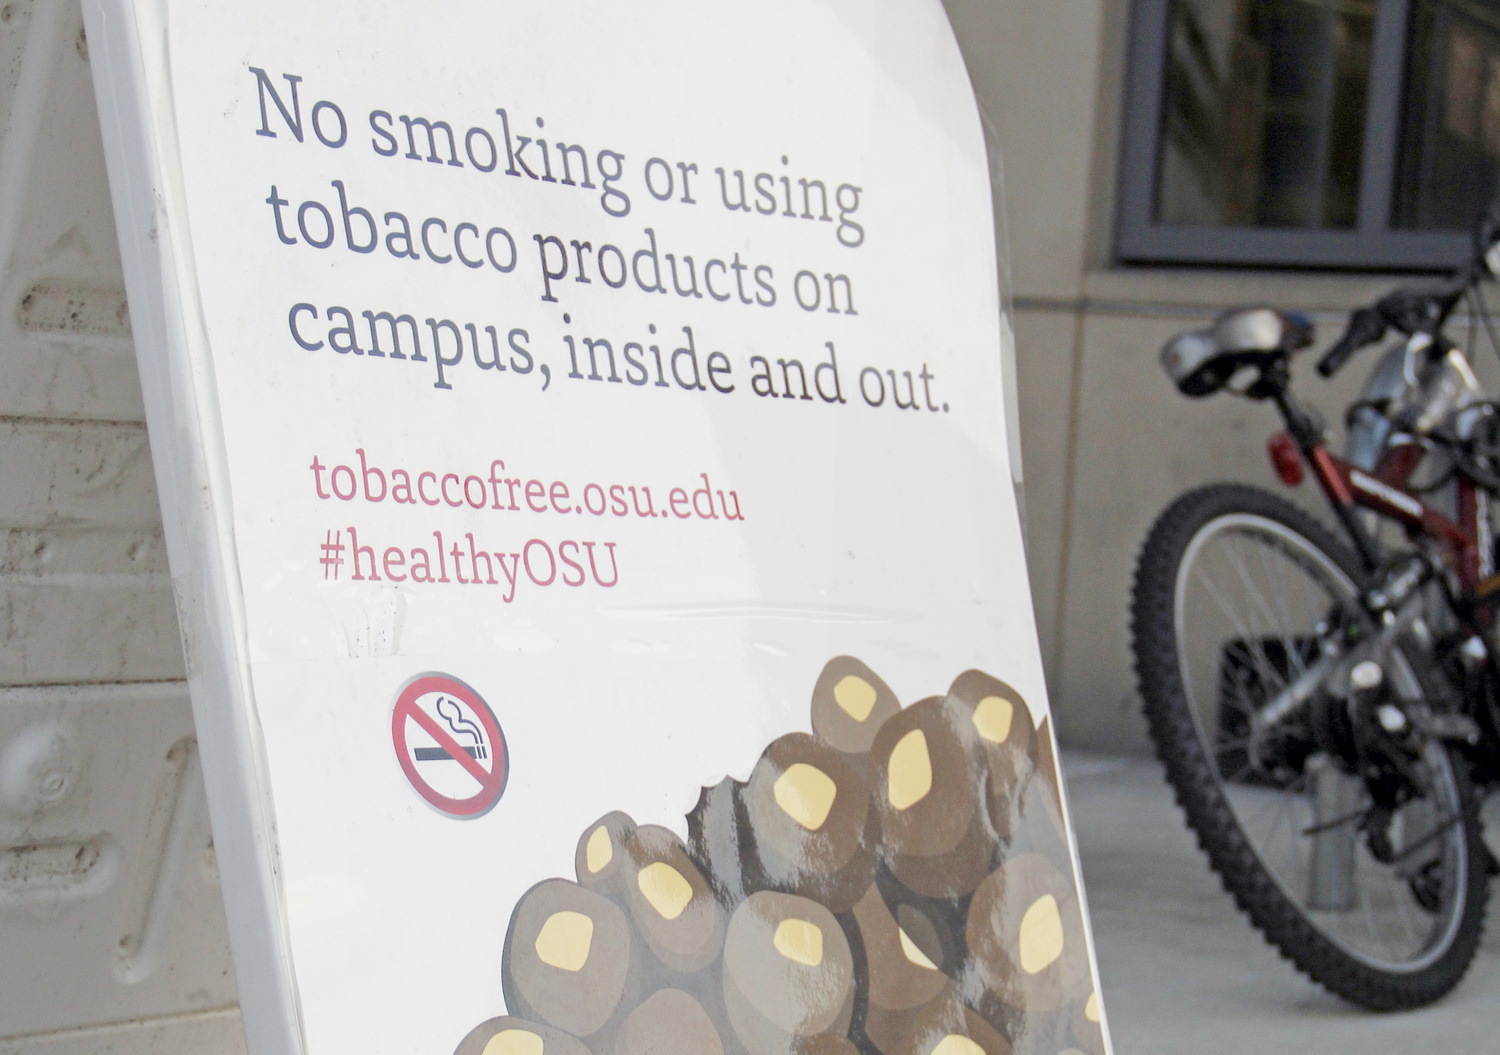 Campus ban of tobacco products--smokers only please?